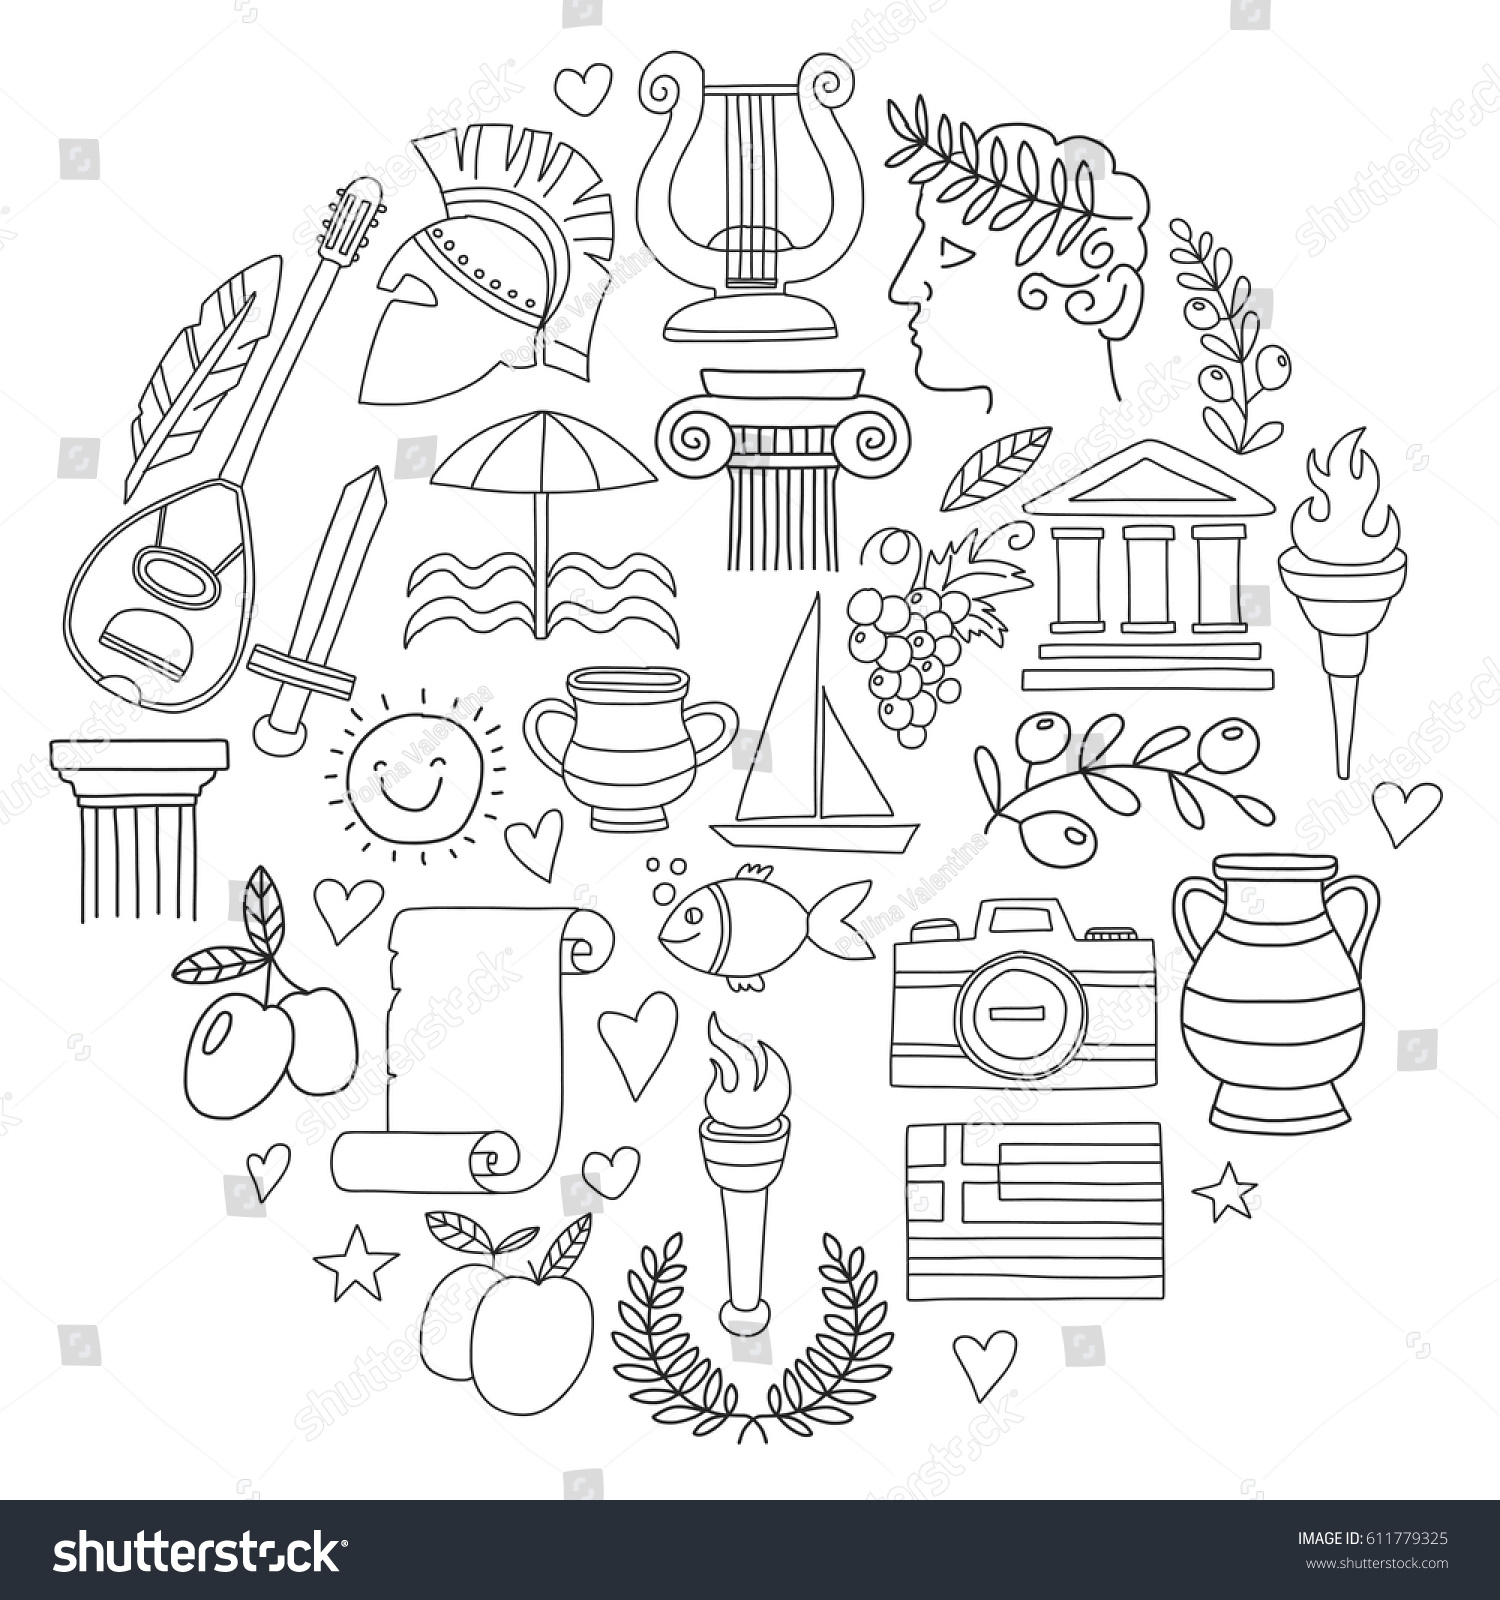 ancient greece vector elements doodle style stock vector 611779325